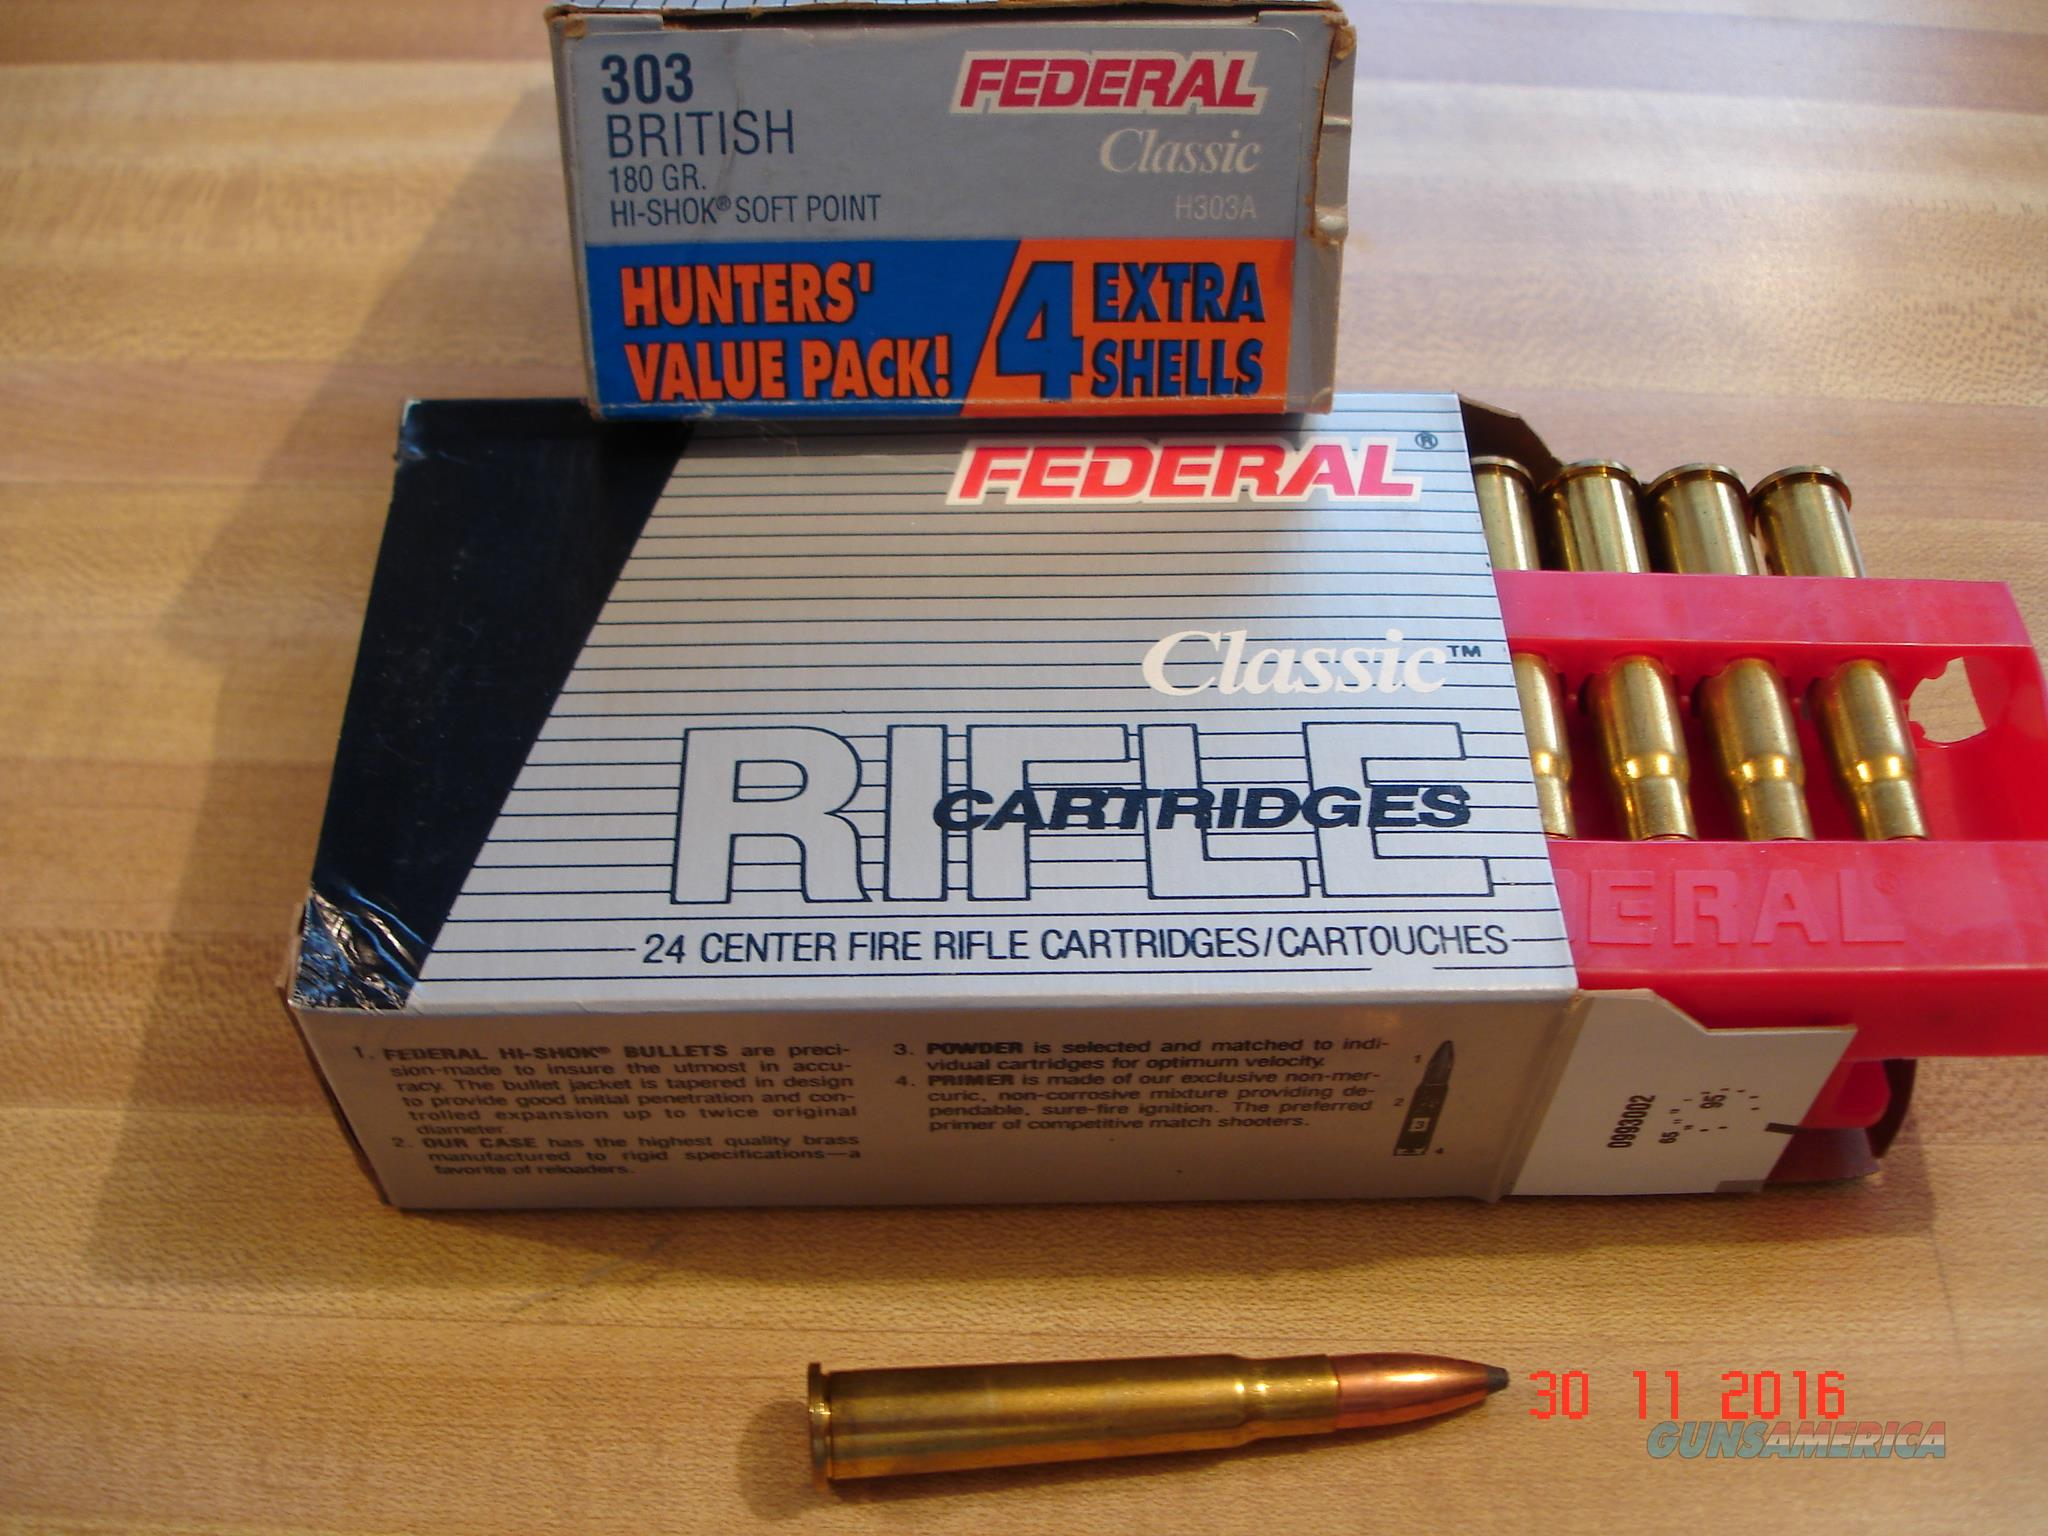 Federal Classic .303 British 180 Gr.HI-Shok Soft point Box of 24 Ctgs.  Non-Guns > Ammunition